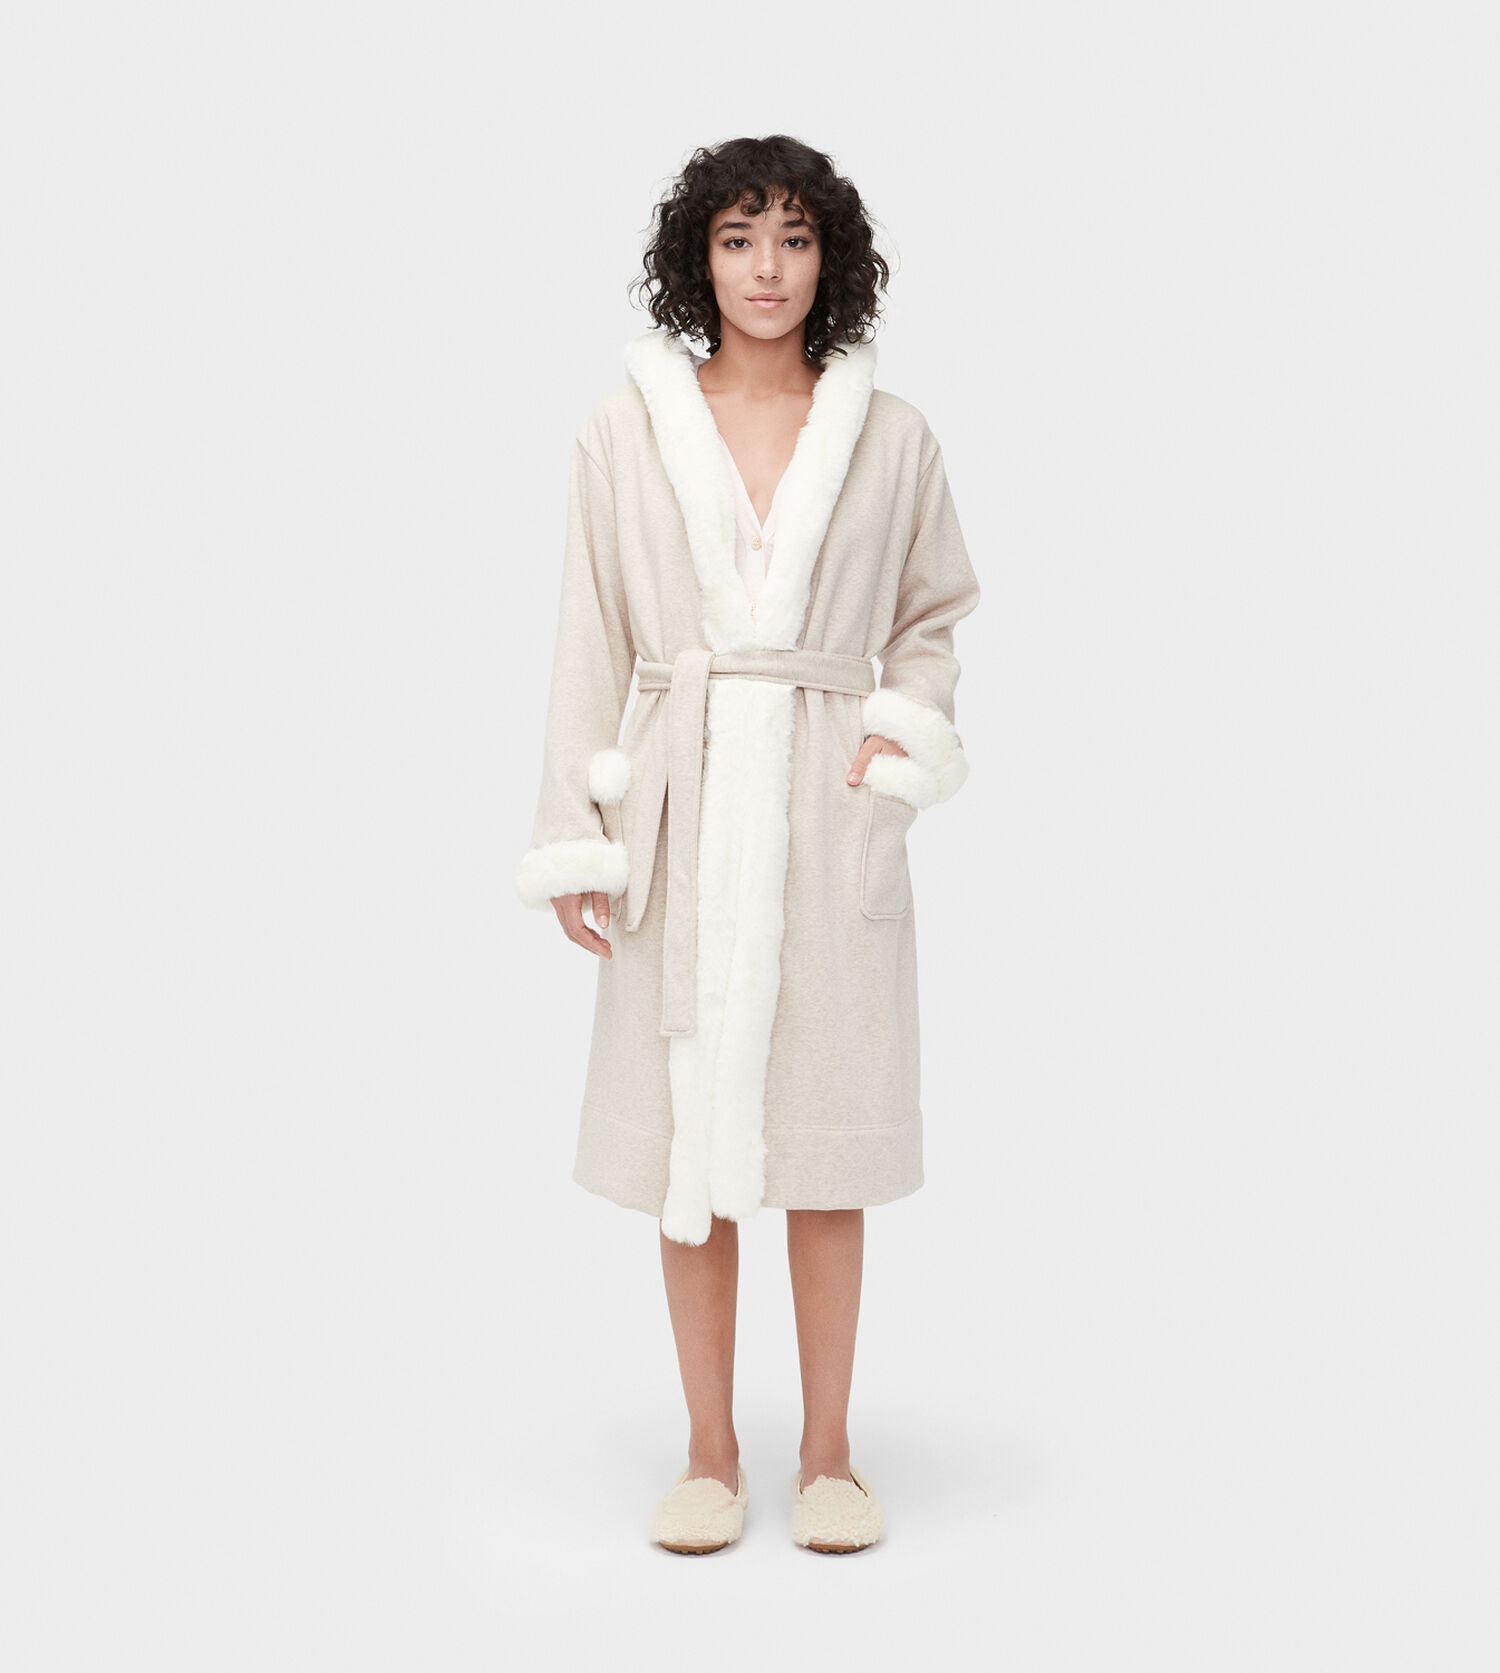 4231f78671 Zoom Duffield Deluxe II Robe - Image 1 of 4